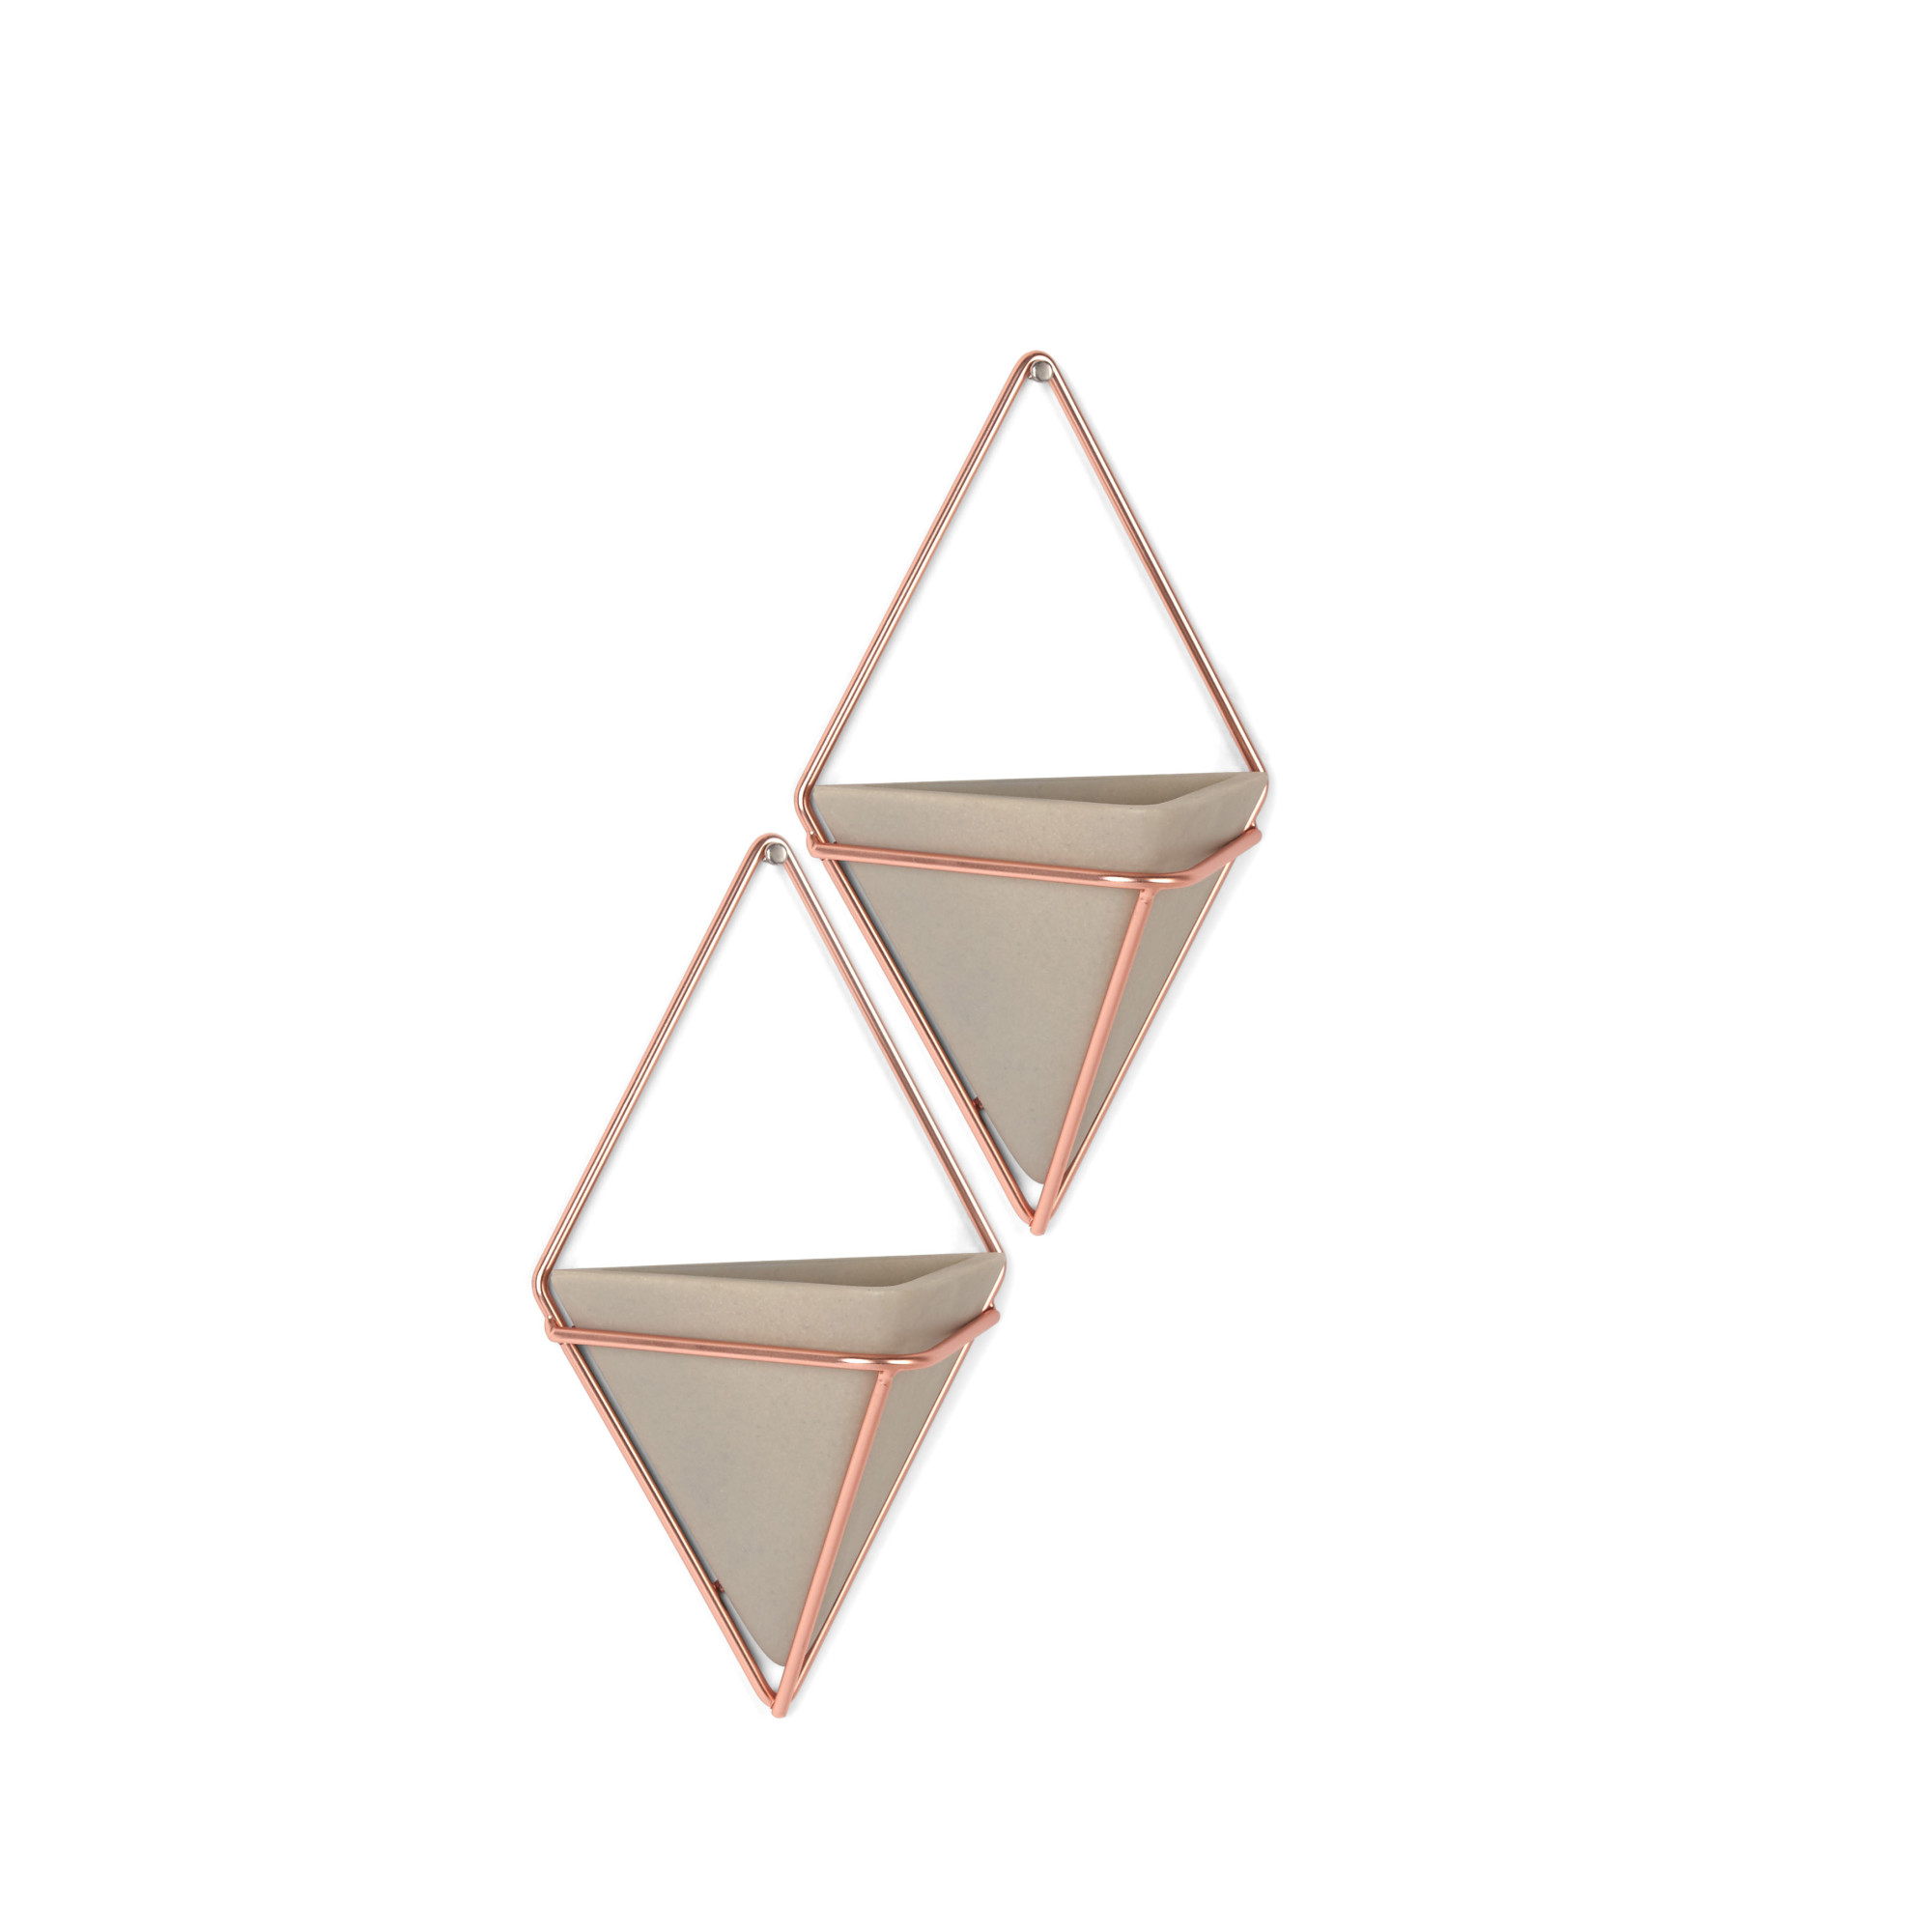 Details About Umbra 470753 Trigg Two Piece Concrete Wall Mounted Planter Set With Metal Frame With Regard To 2 Piece Trigg Wall Decor Sets (Set Of 2) (Gallery 6 of 30)